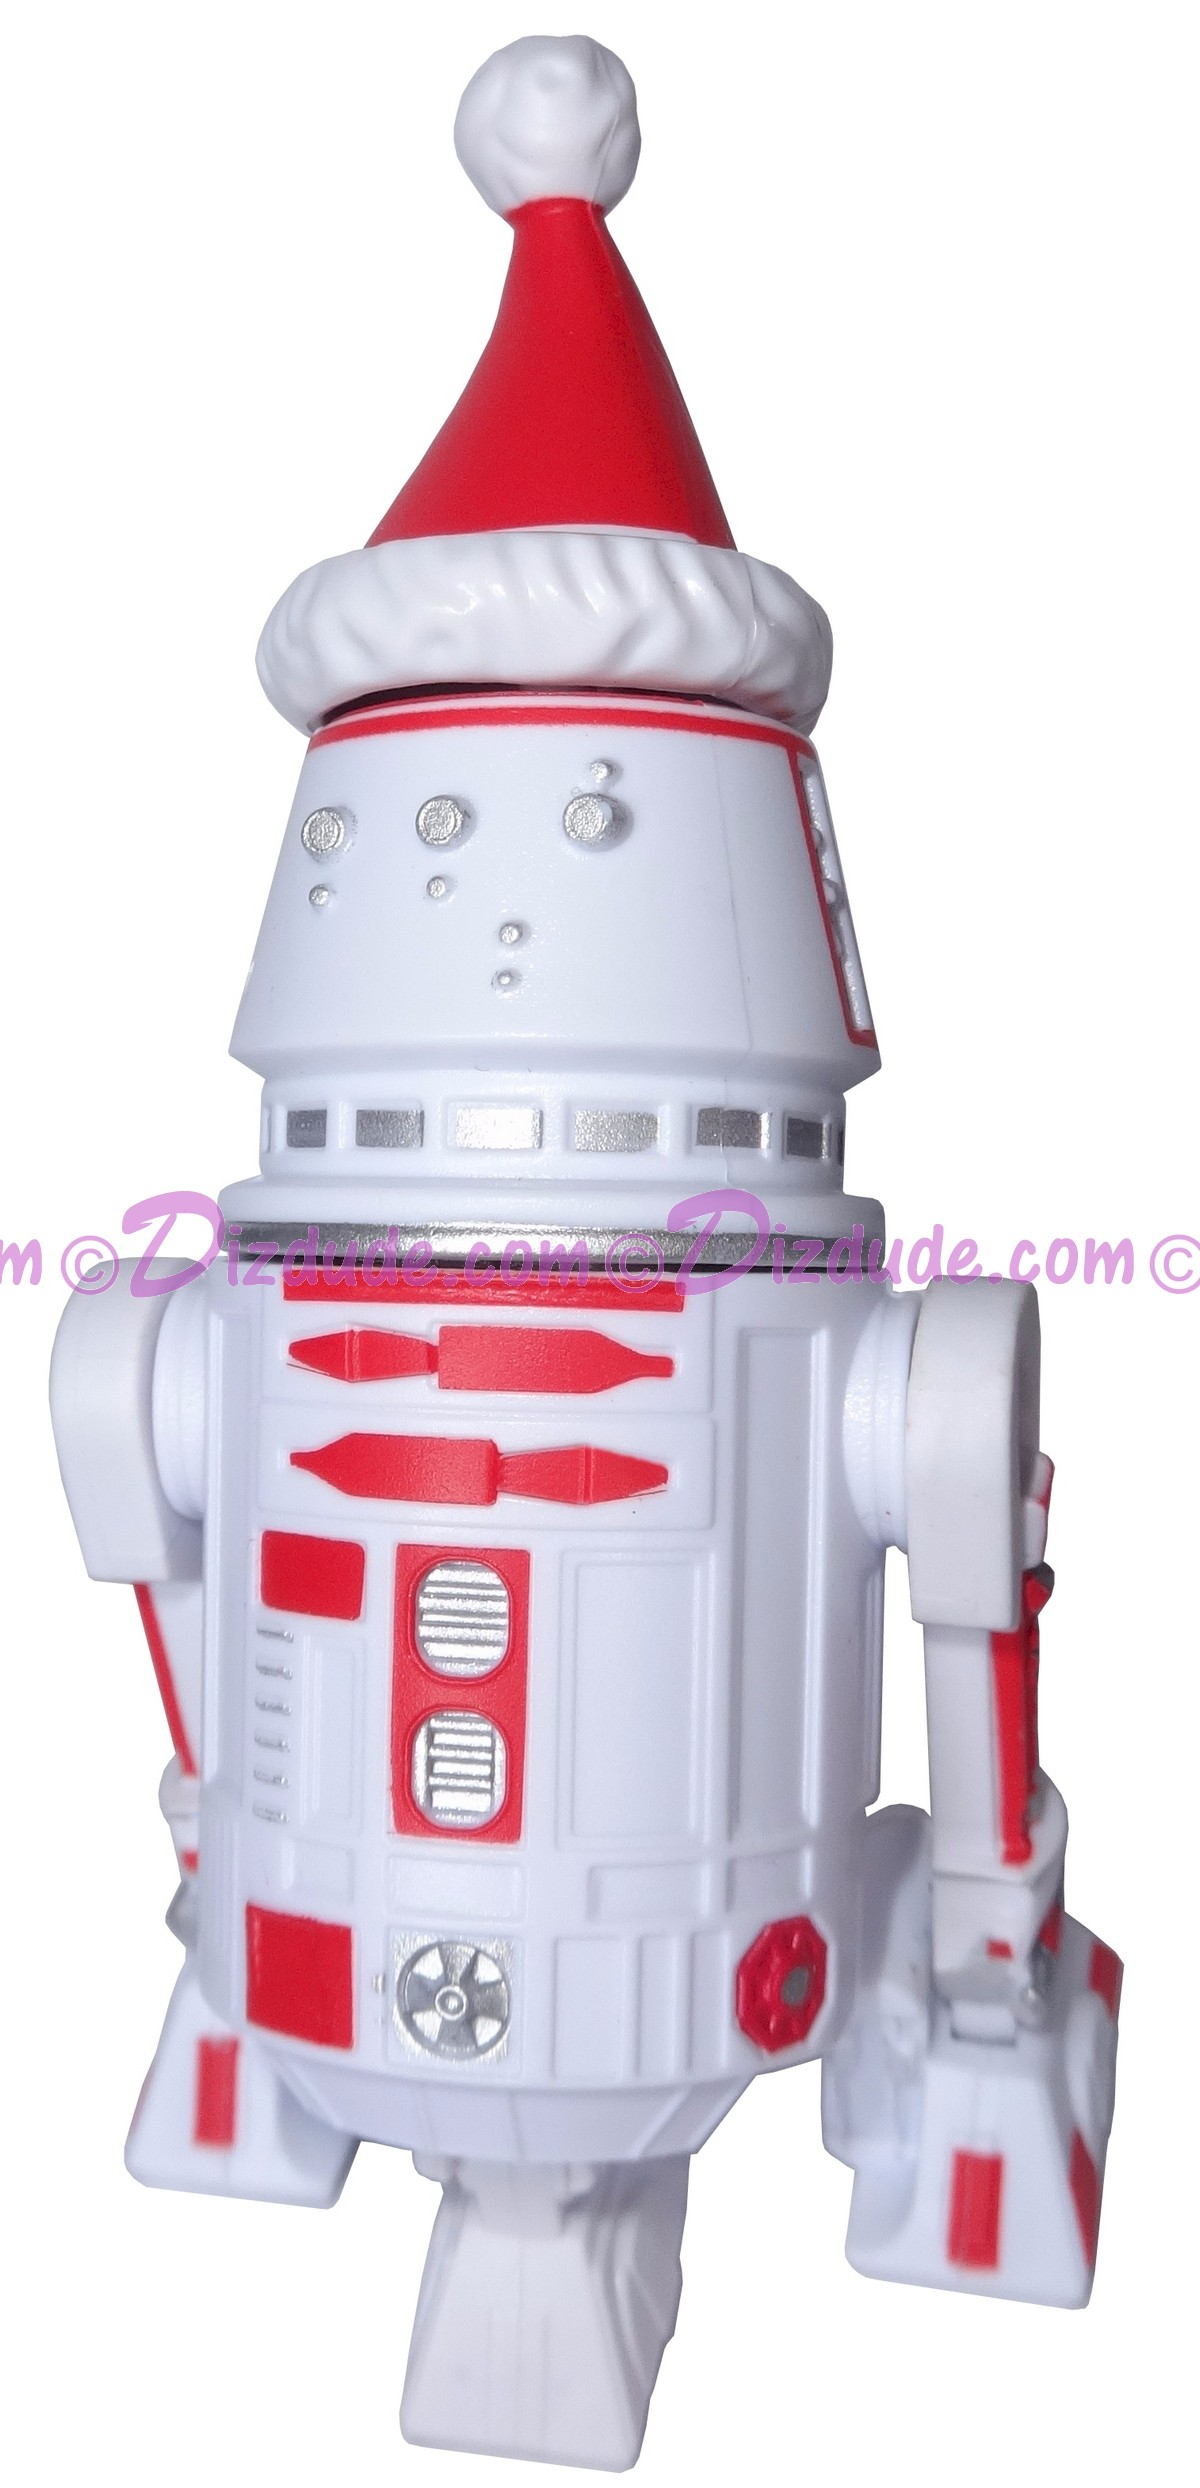 White & Red R5-D4 with Santa Hat Astromech Droid ~ Series 2 Disney Star Wars Build-A-Droid Factory © DIZDUDE.COM